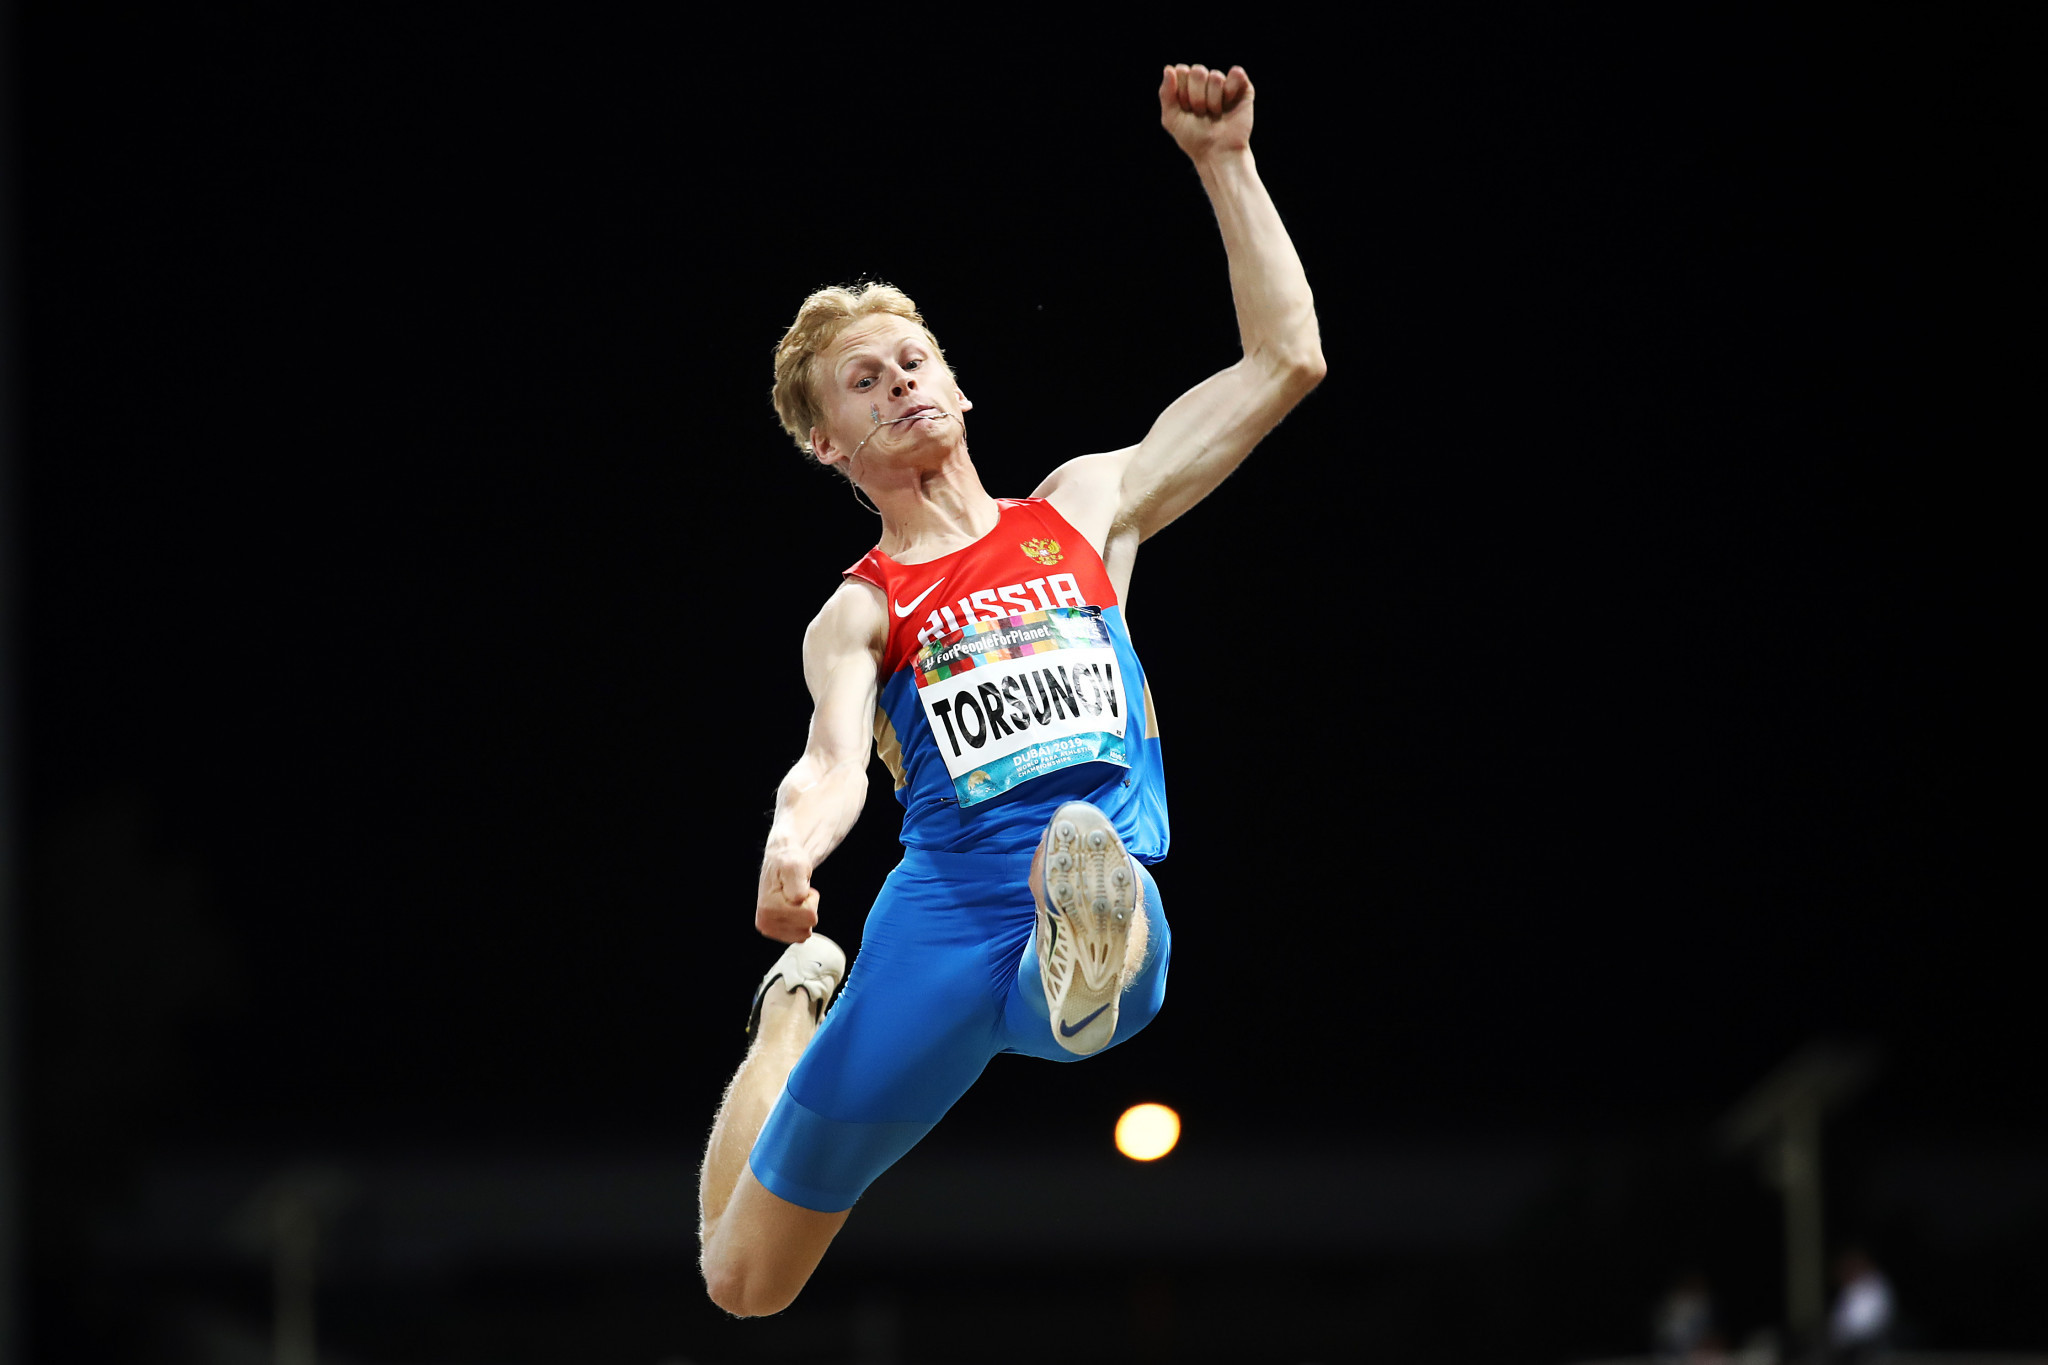 Torsunov jumped a Paralympic record of 5.76 metres to claim gold ©Getty Images